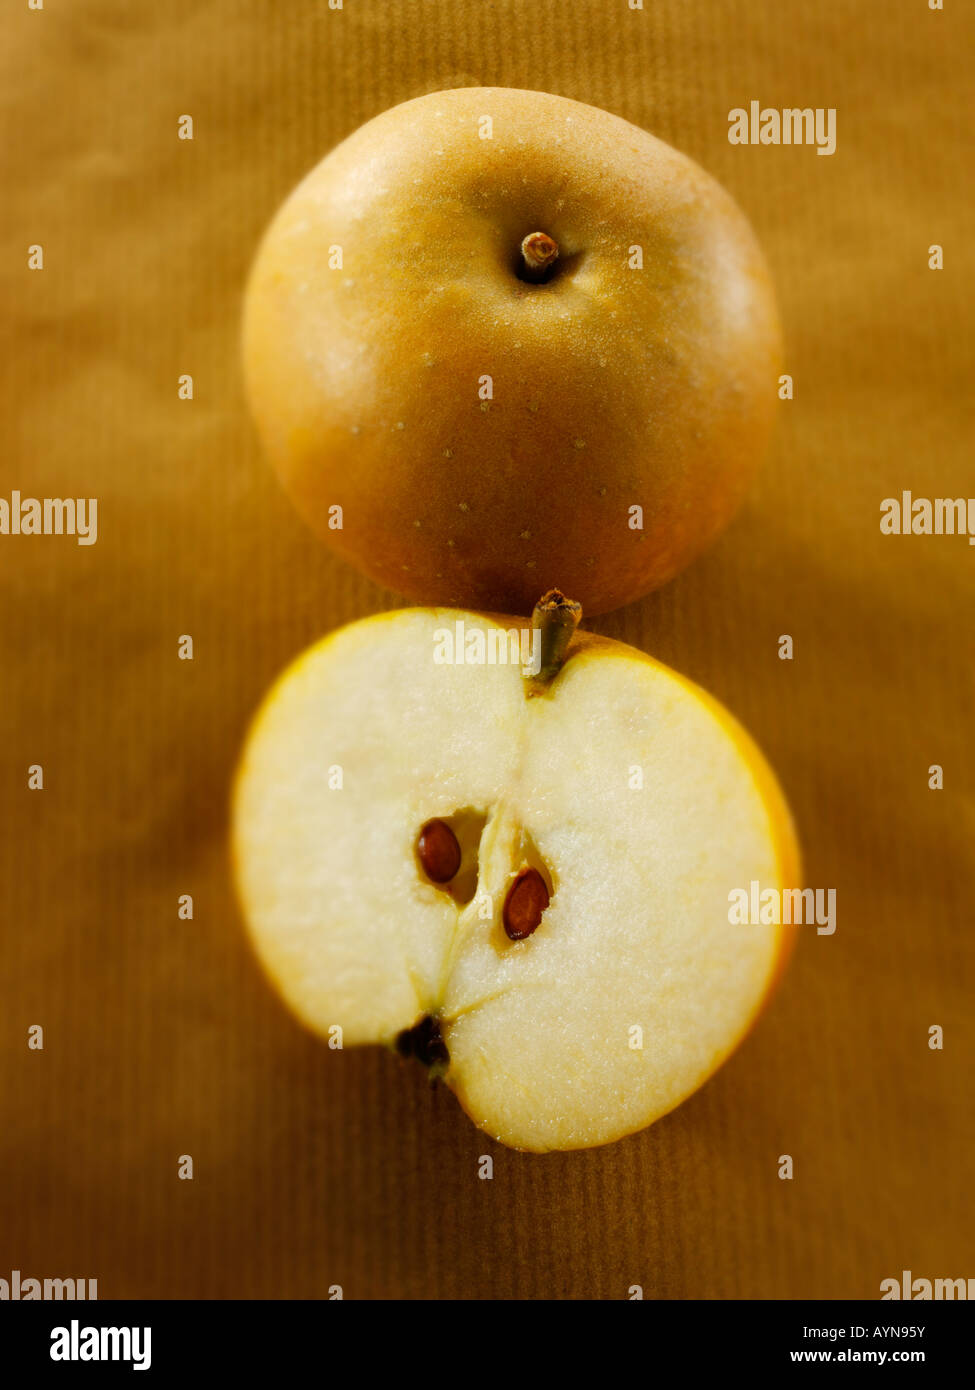 Organic Russet apple cut and whole - Soft Focus - Stock Image